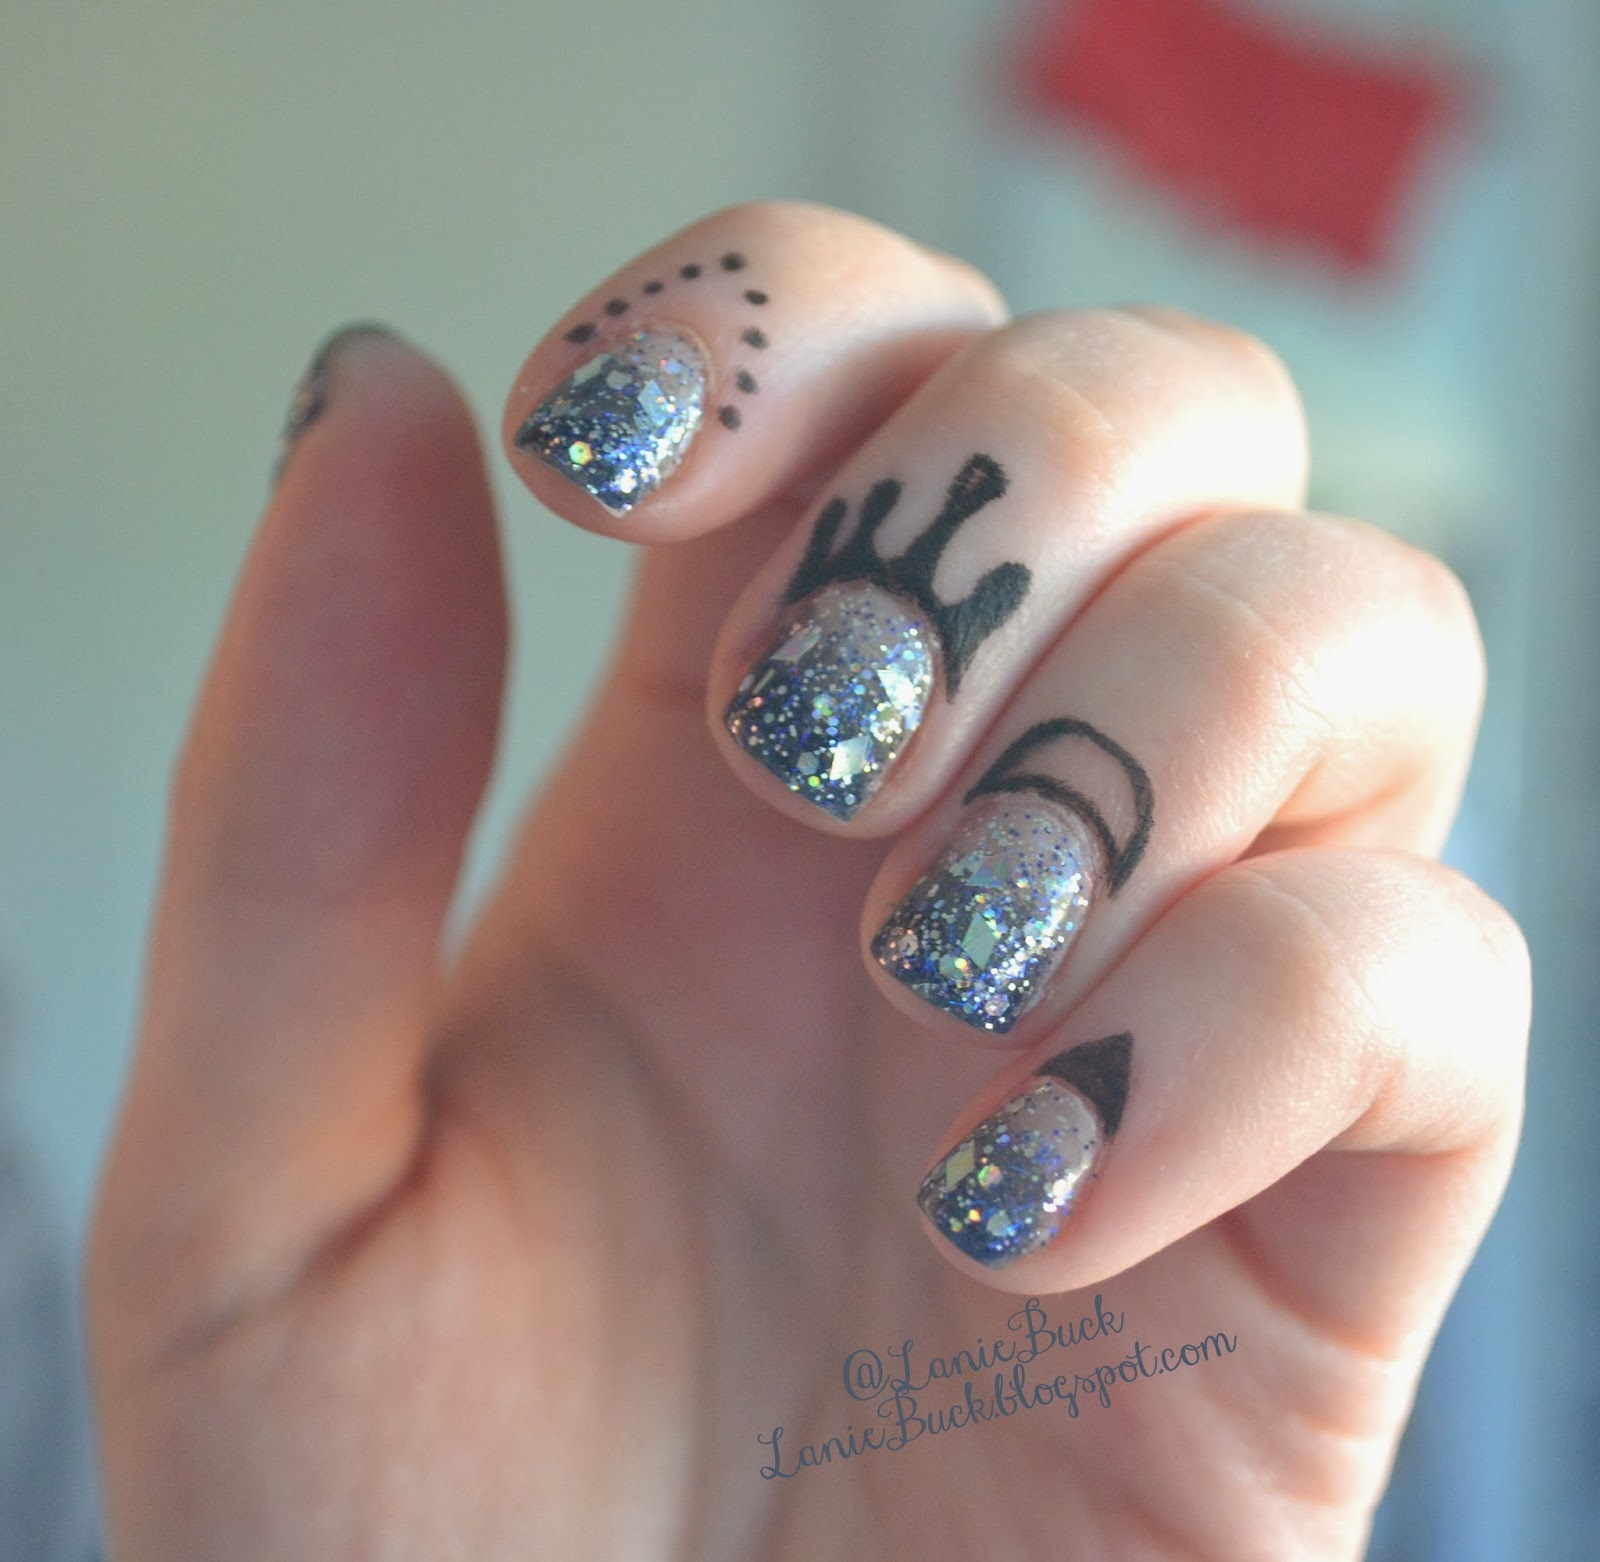 Diy beauty cuticle tattoos with no transfers for Tattoo dots on fingers meaning